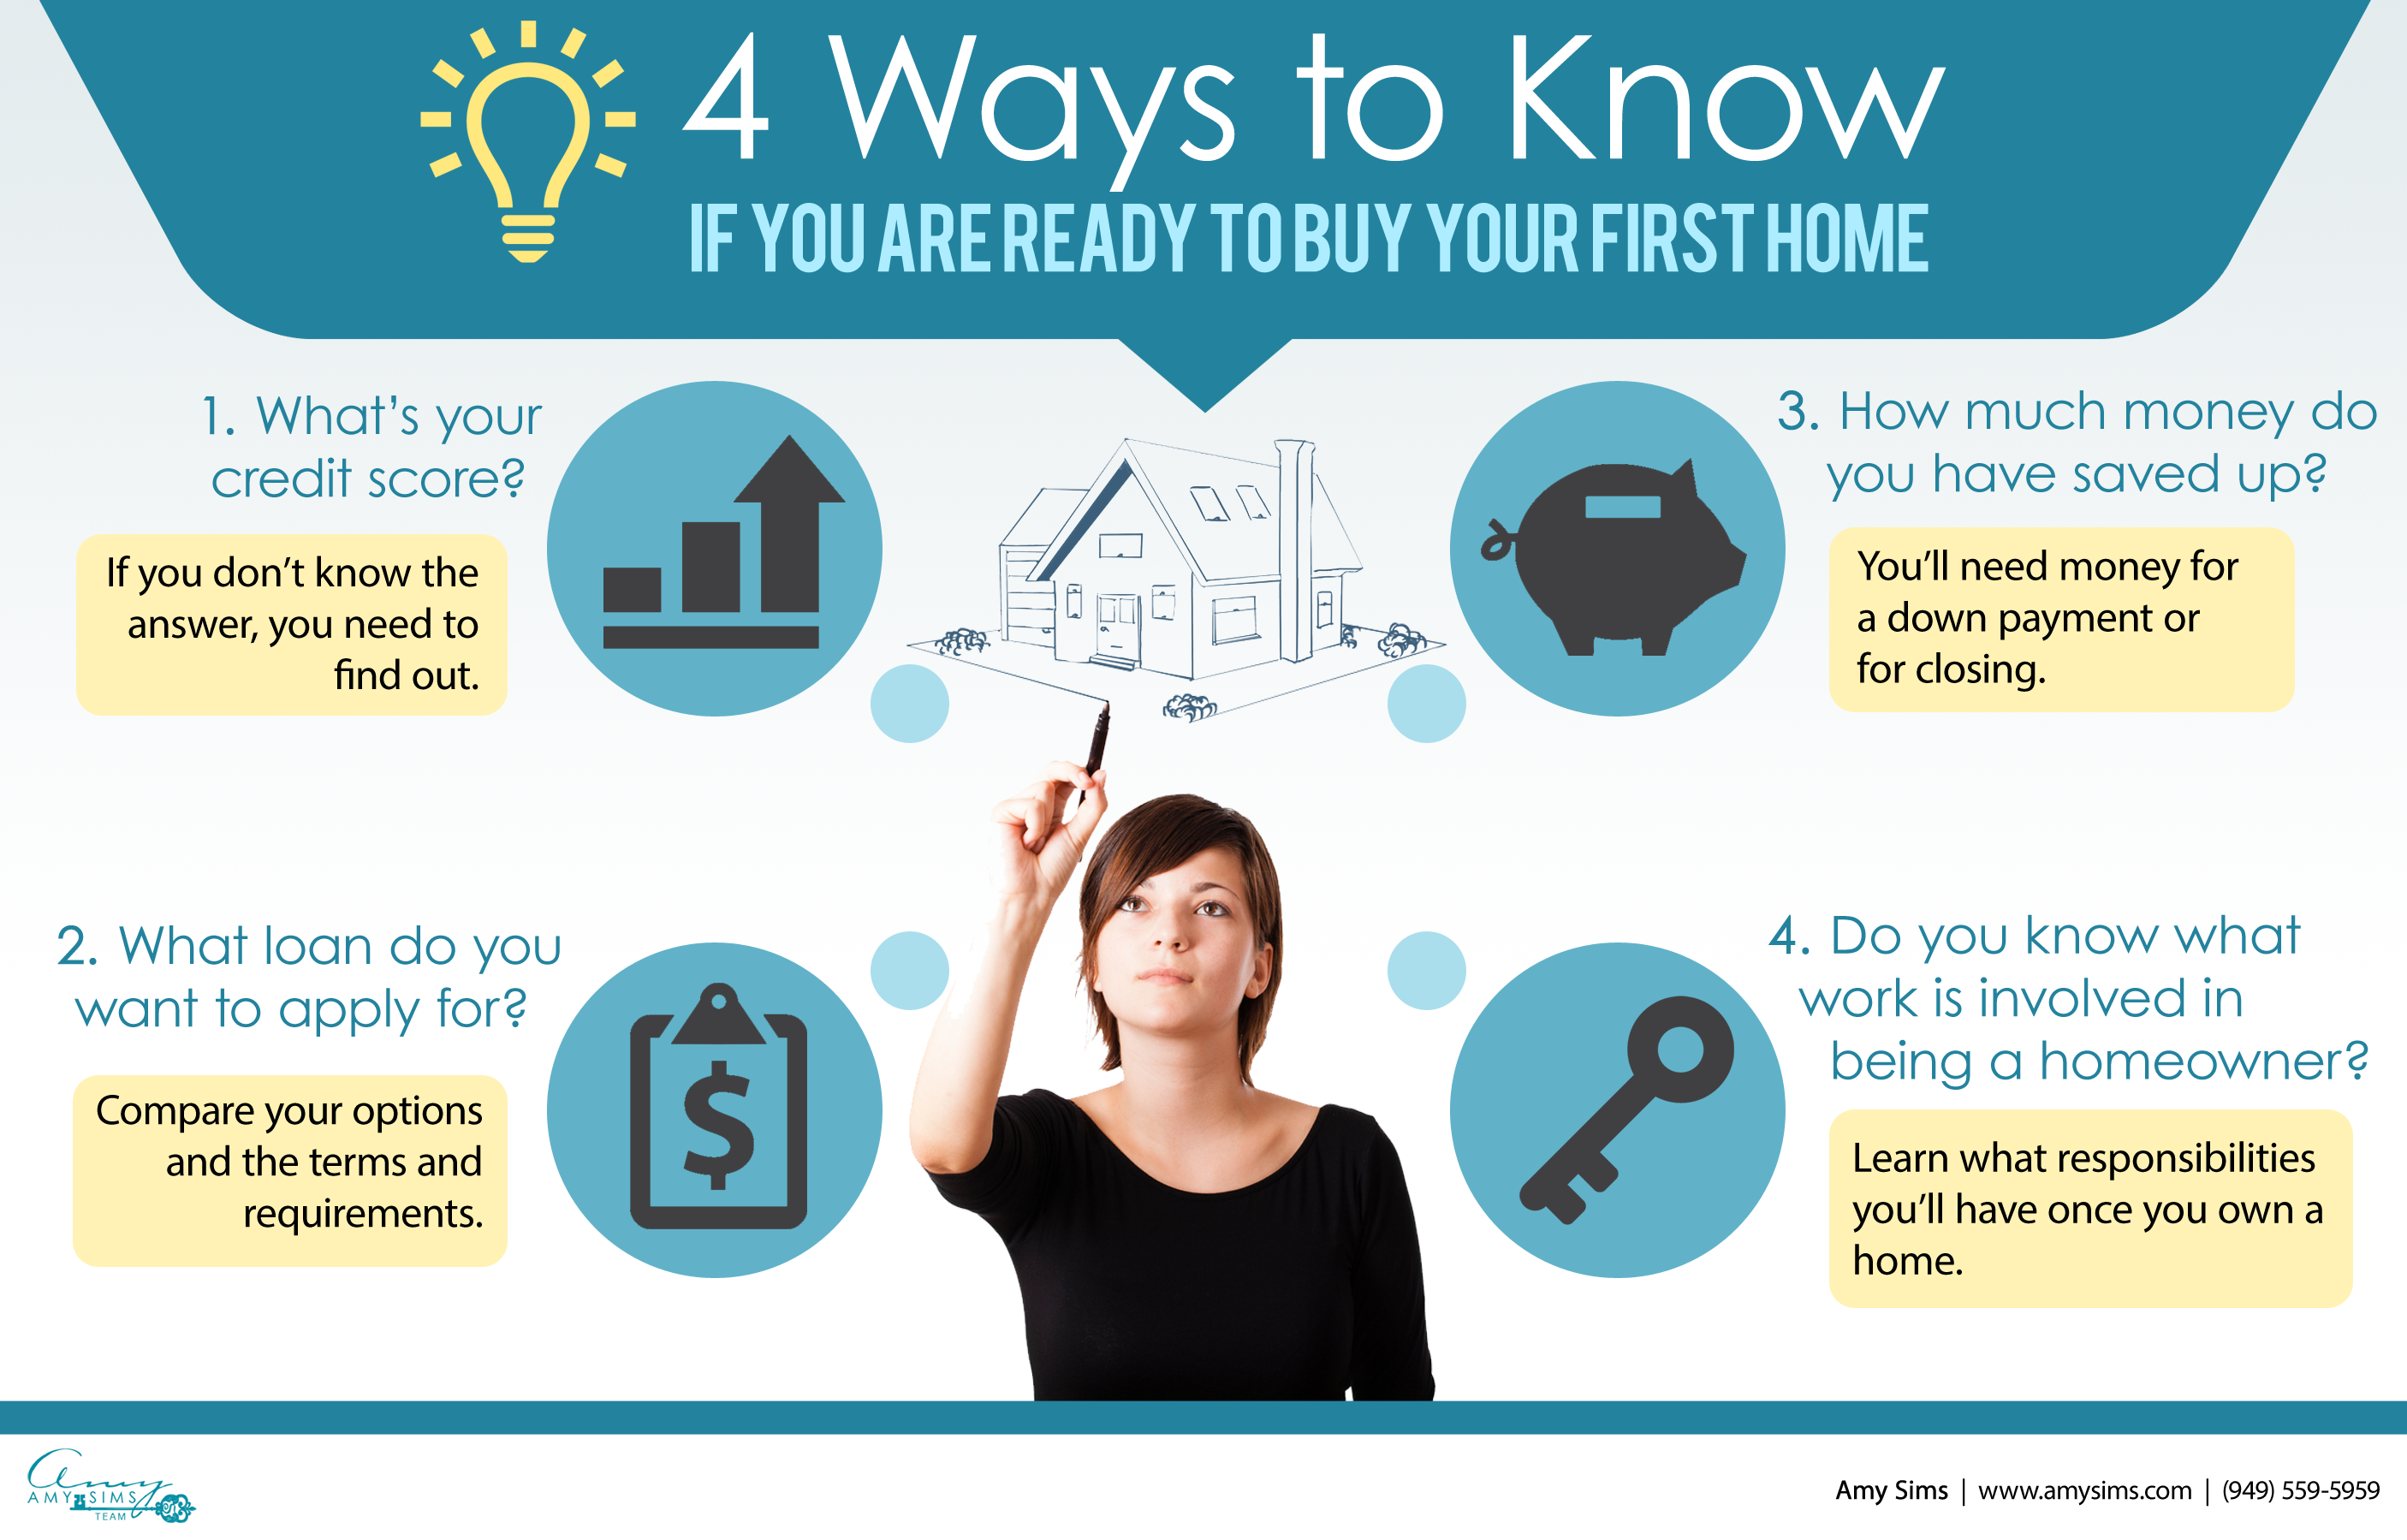 4 Ways to know if ready to buy home Image